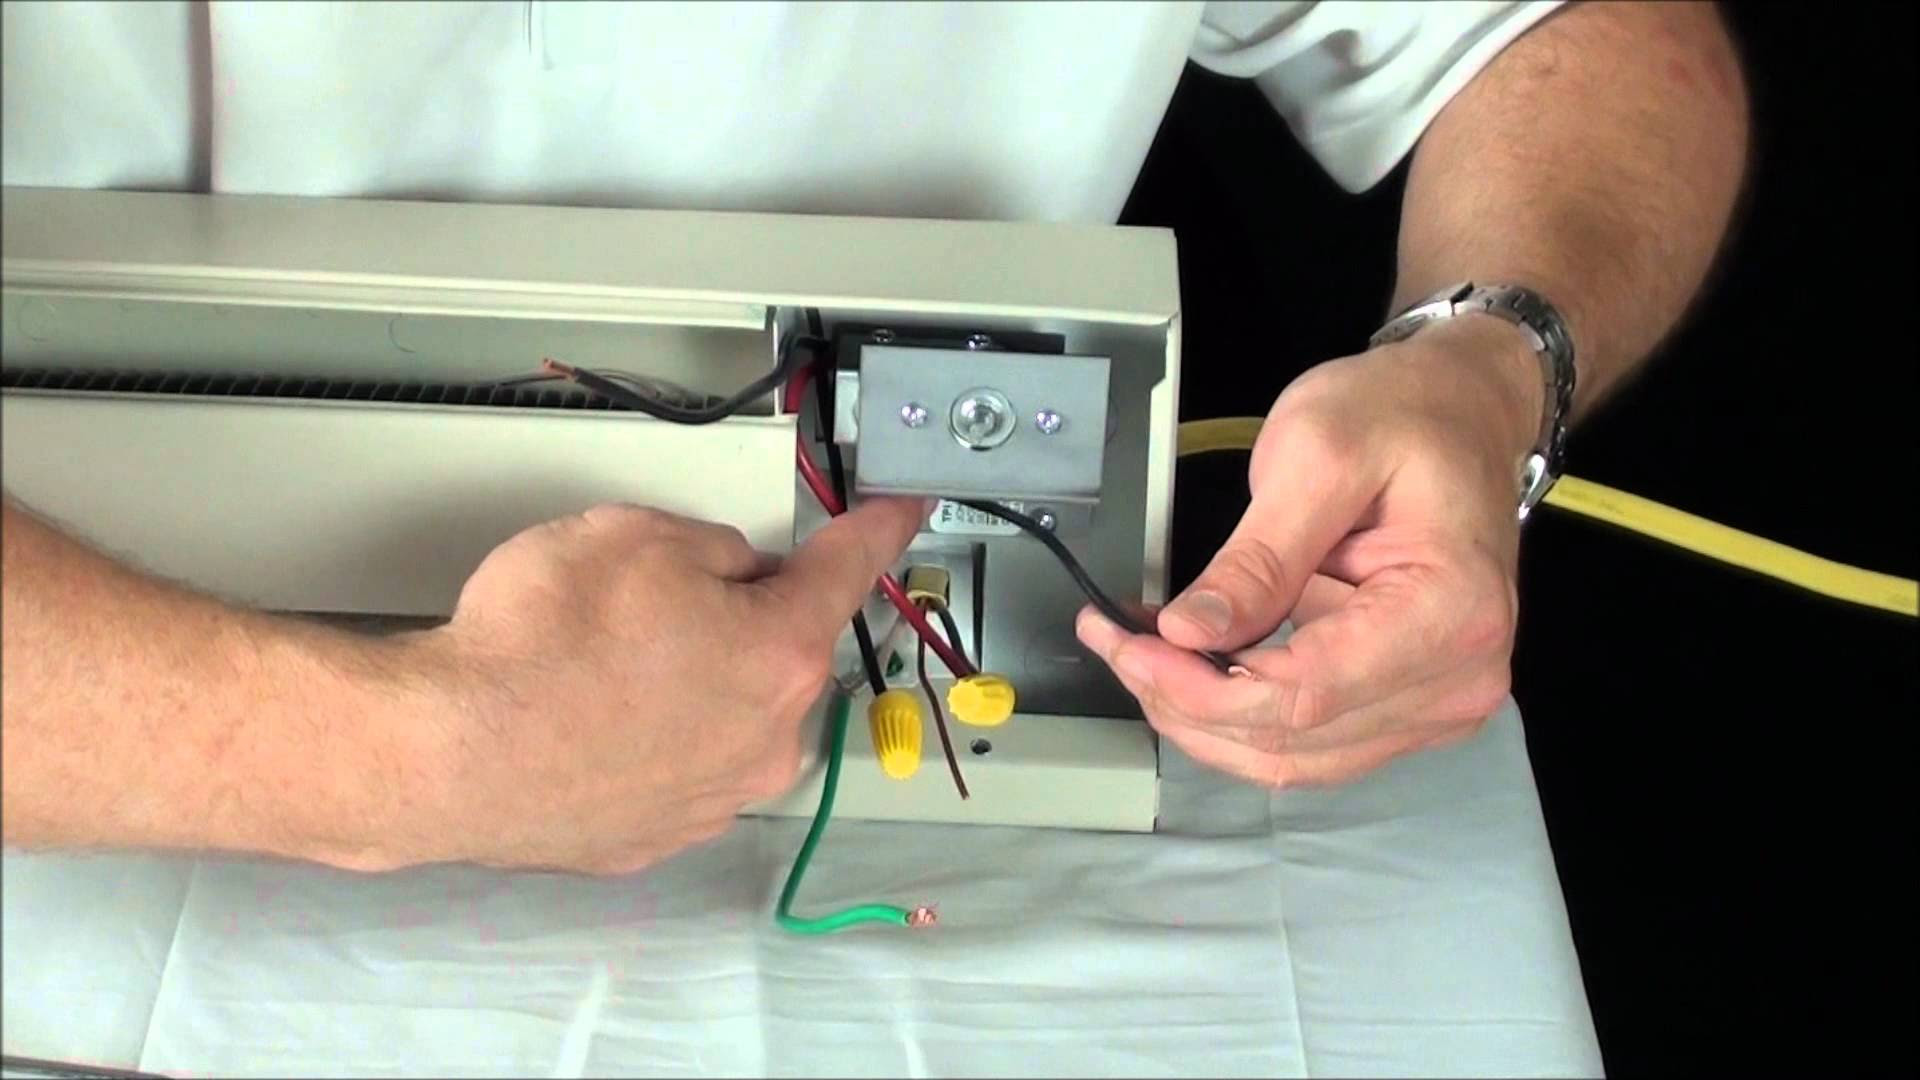 wiring a cadet thermostat image 3